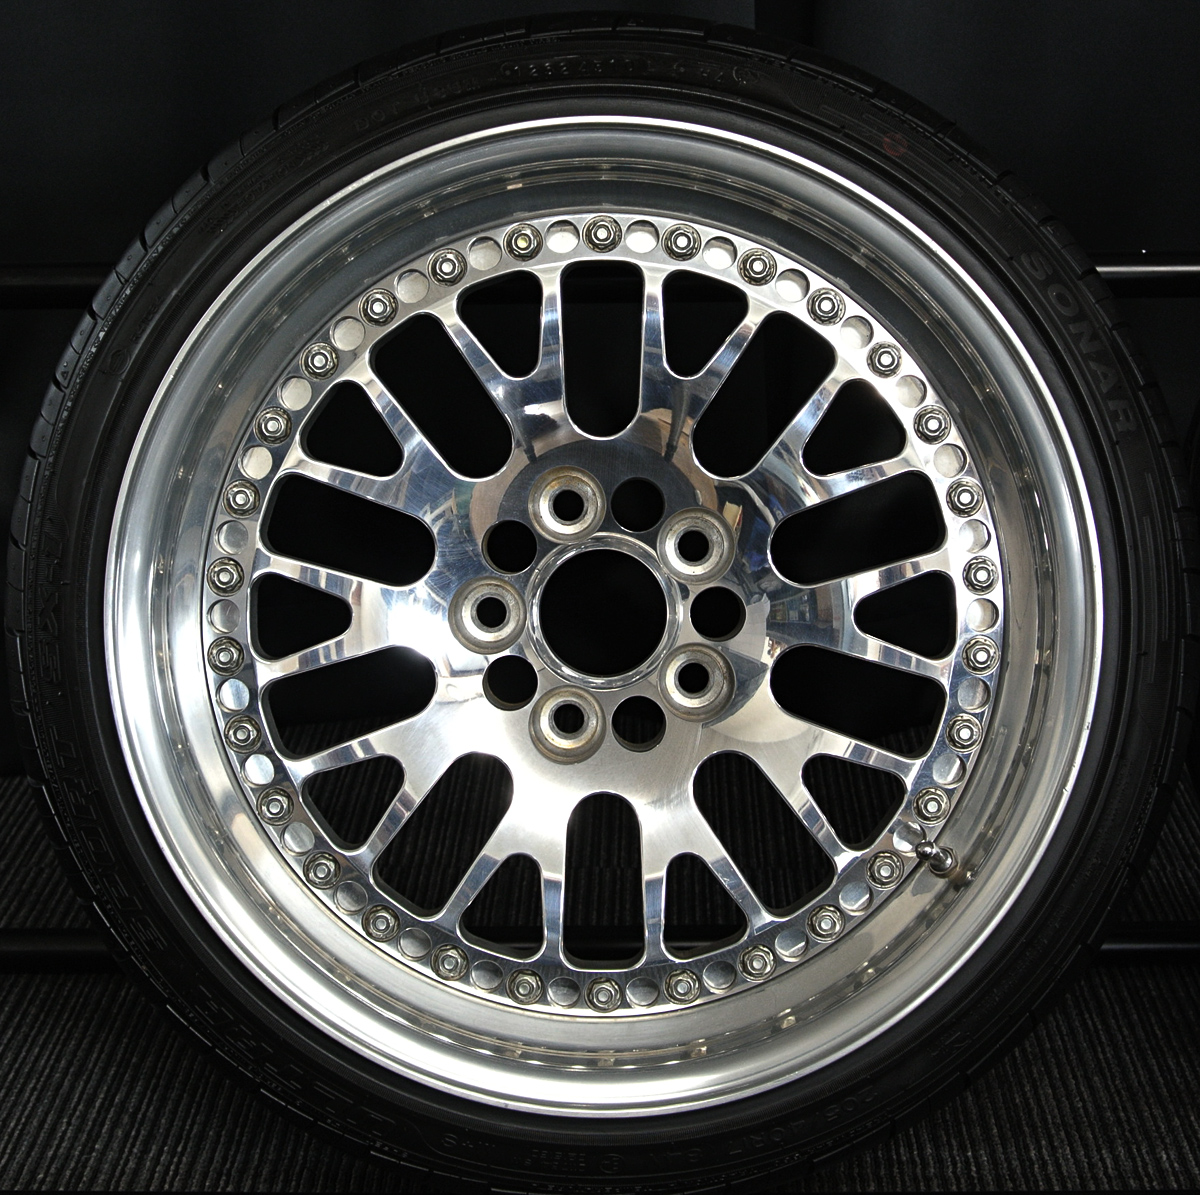 CCW Classic's race versions クロム SONAR ULTRA SPORT SX-1 205/40R17 4本SET